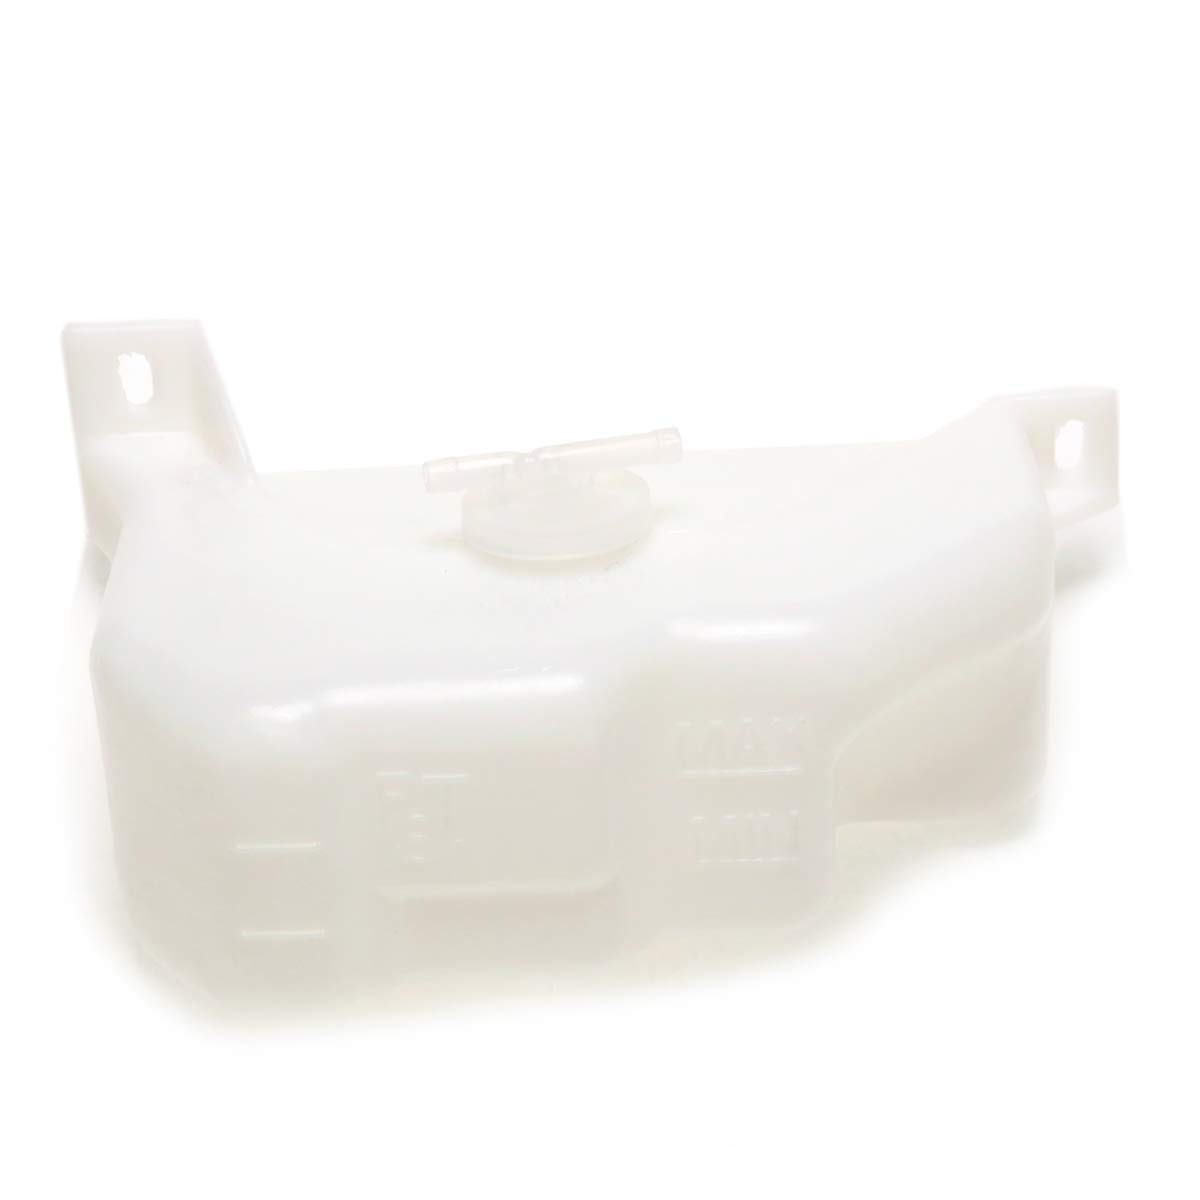 Engine Coolant Reservoir Tank Fit for 1980-1989 Datsun Nissan 720 2WD Pickup Truck UTE New